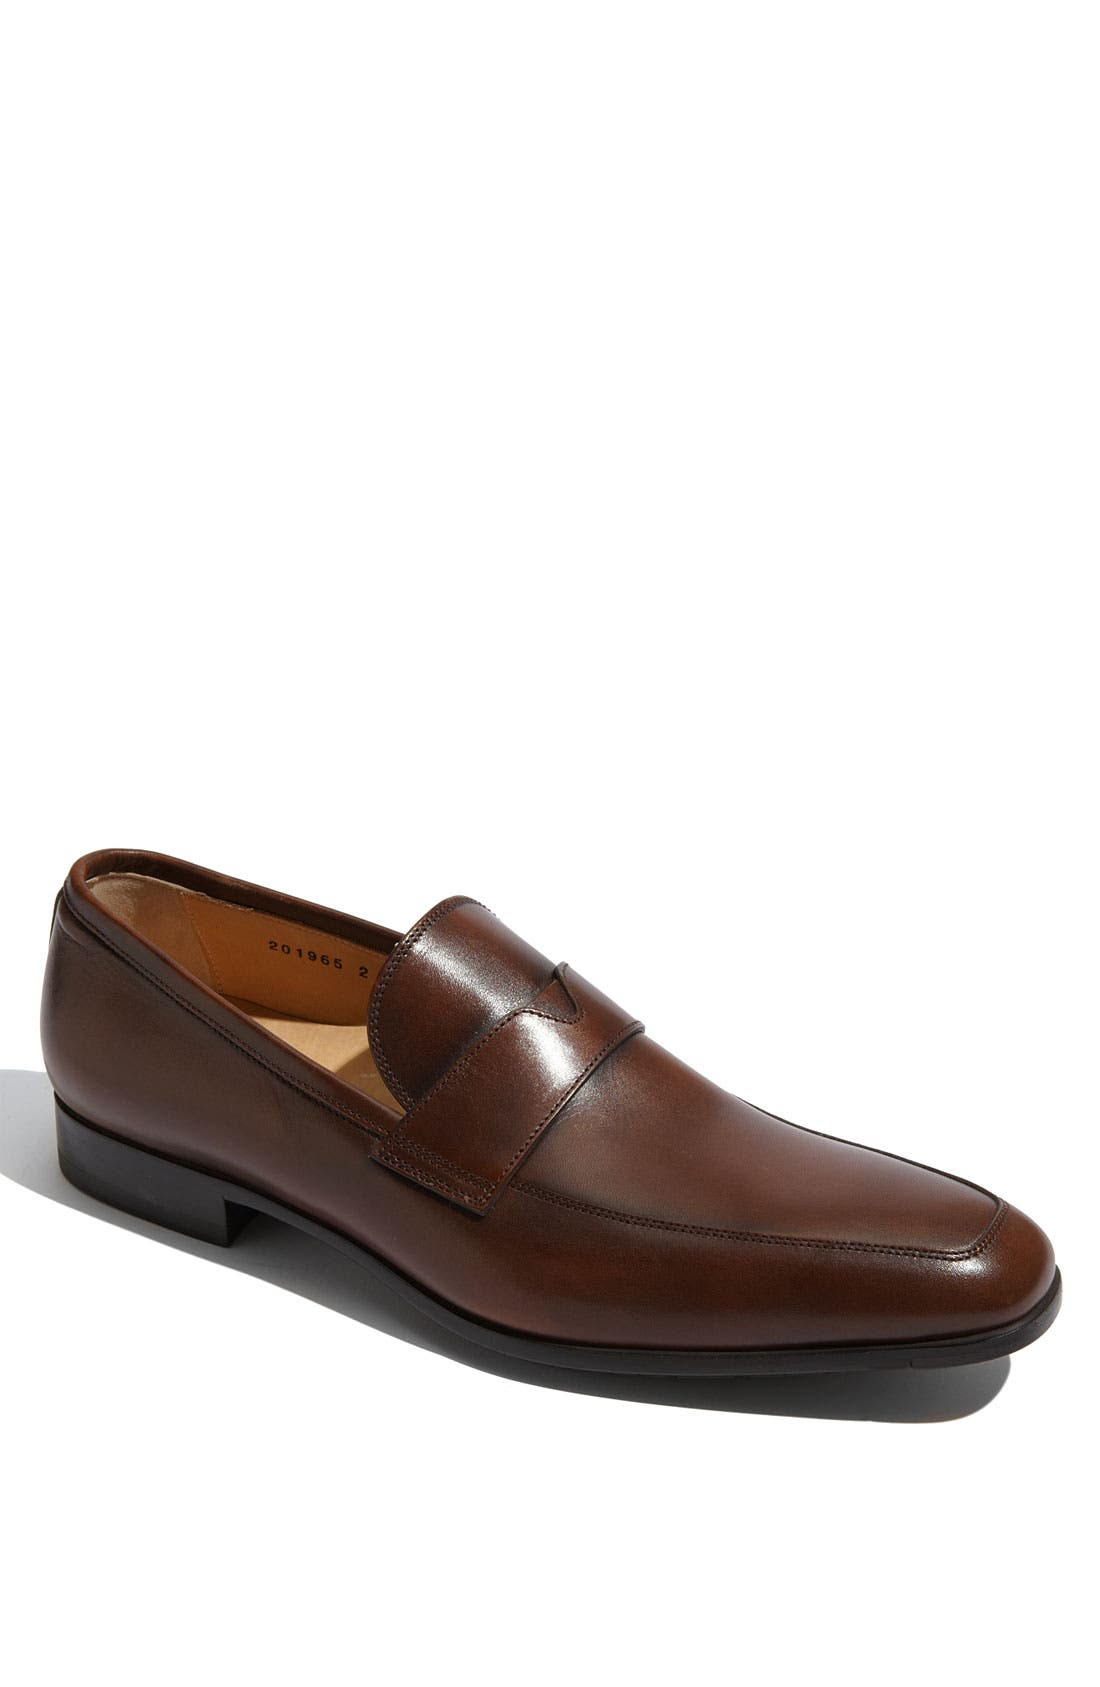 Alternate Image 1 Selected - Santoni 'Quinlan' Loafer